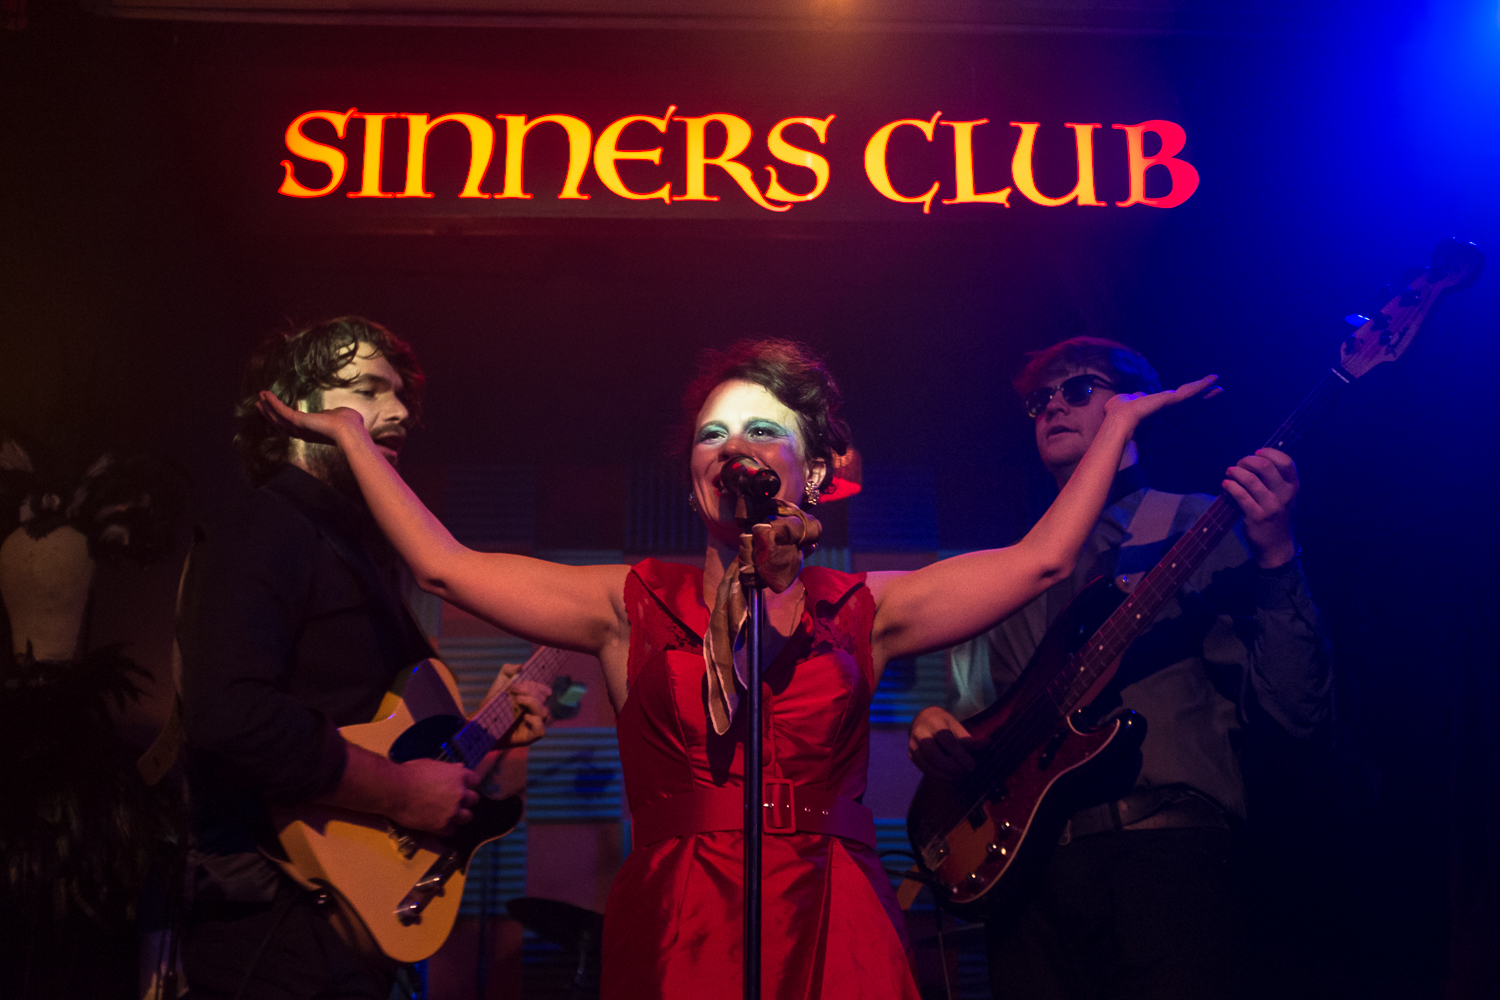 SinnersClub - Lucy Rivers and The Bad Mothers Band. Photo credit Kieran Cudlip